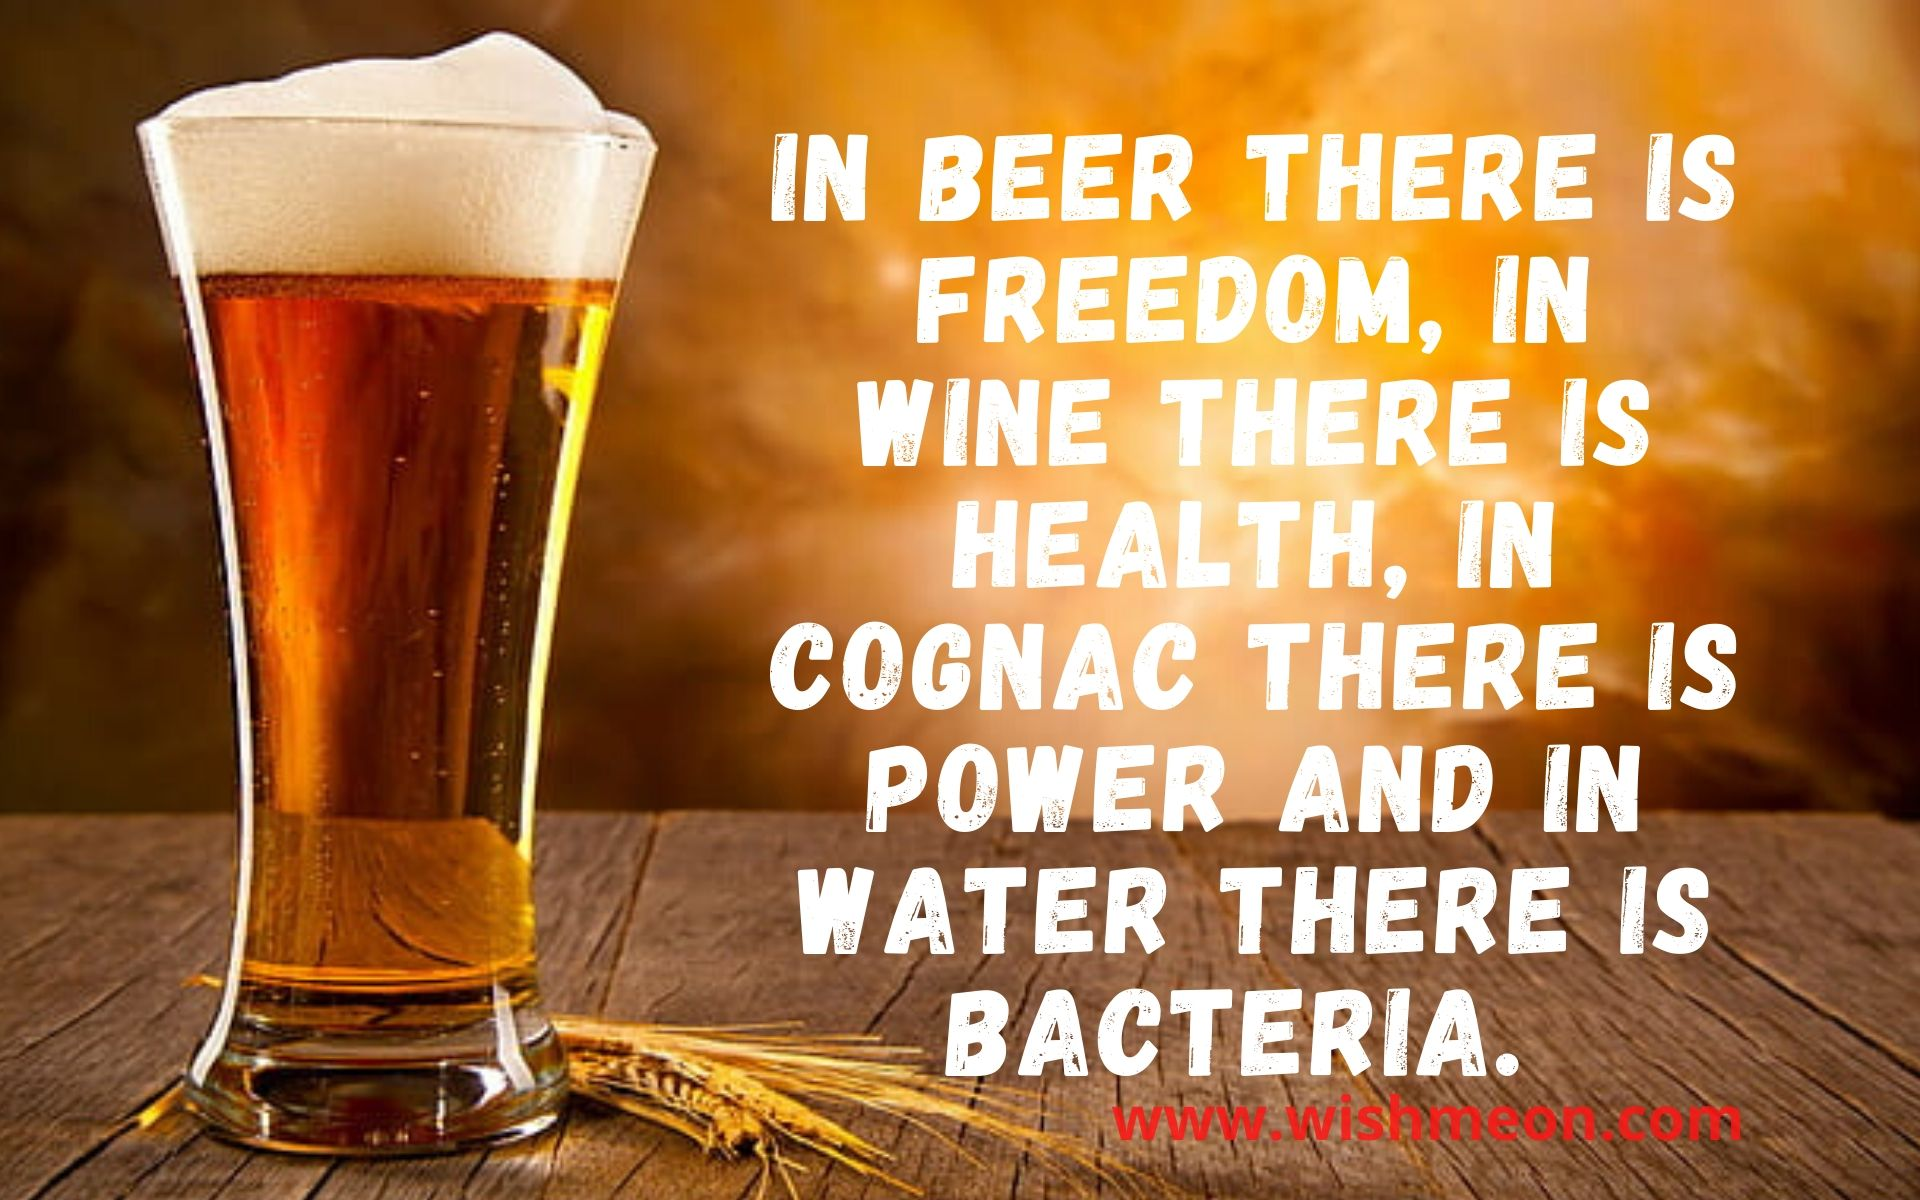 I Beer There Is Freedom In Wine There Is Health